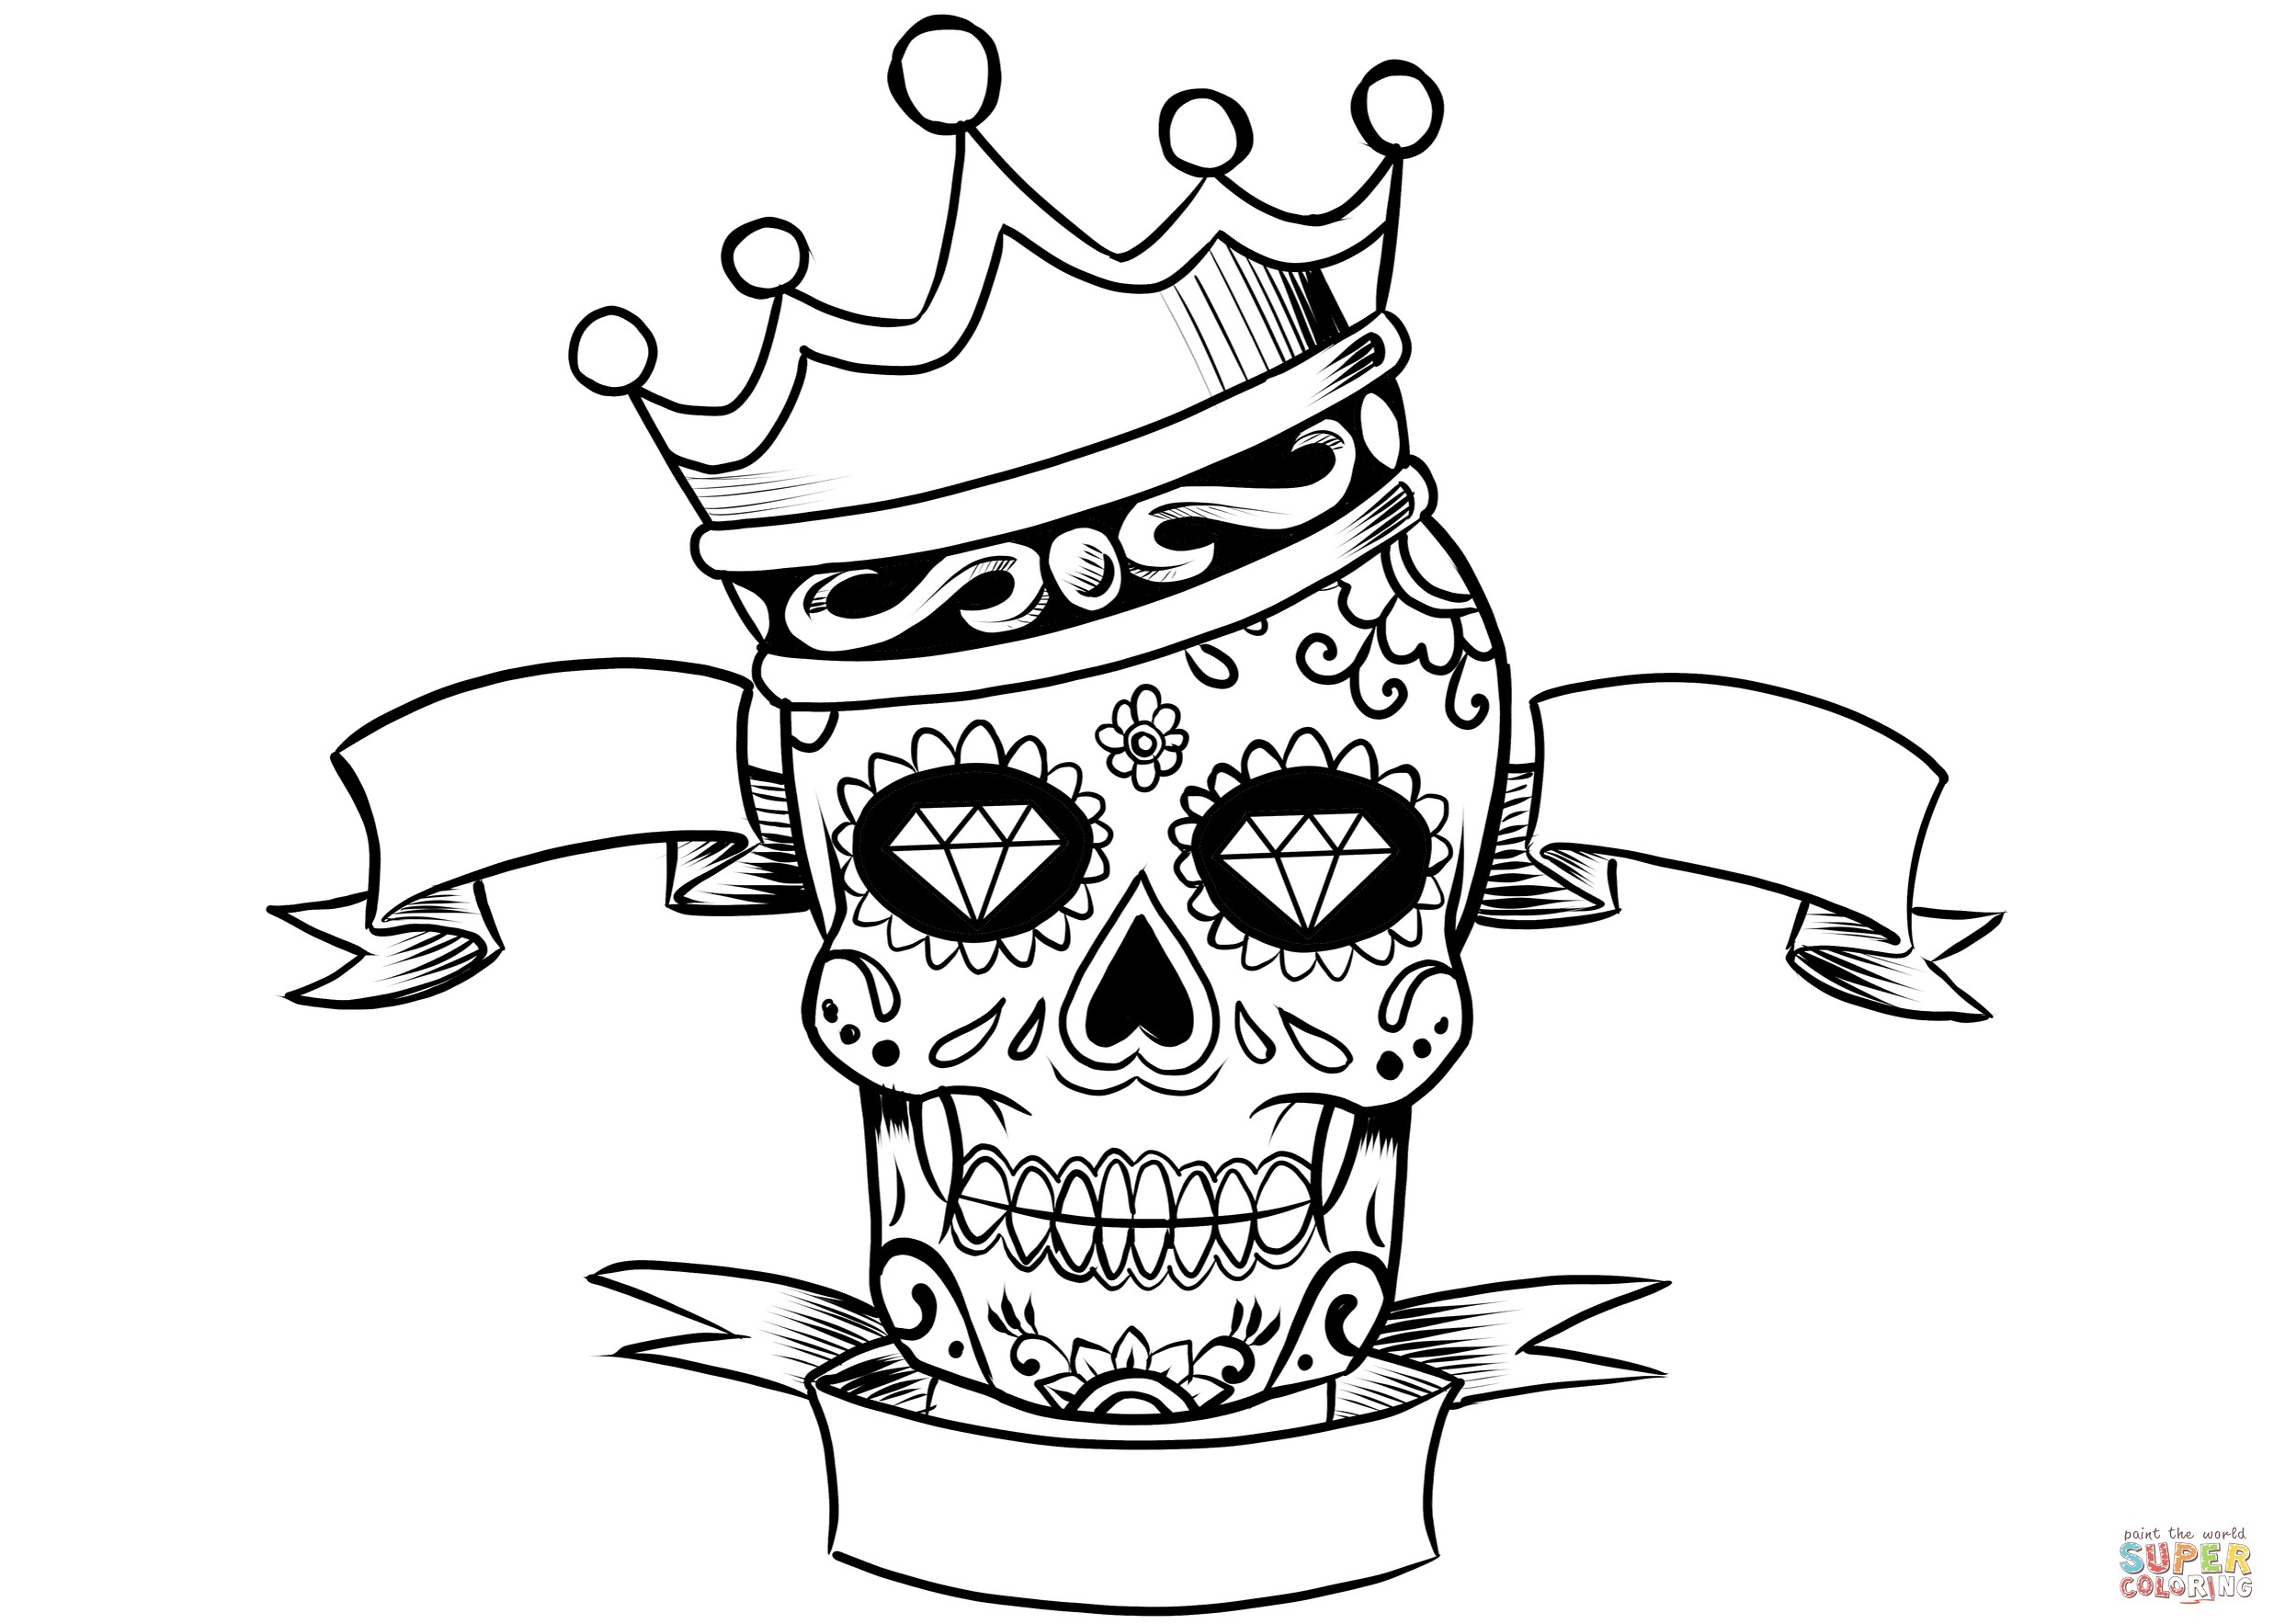 king crown coloring page purim coloring pages crown drawing crown tattoo design coloring king crown page